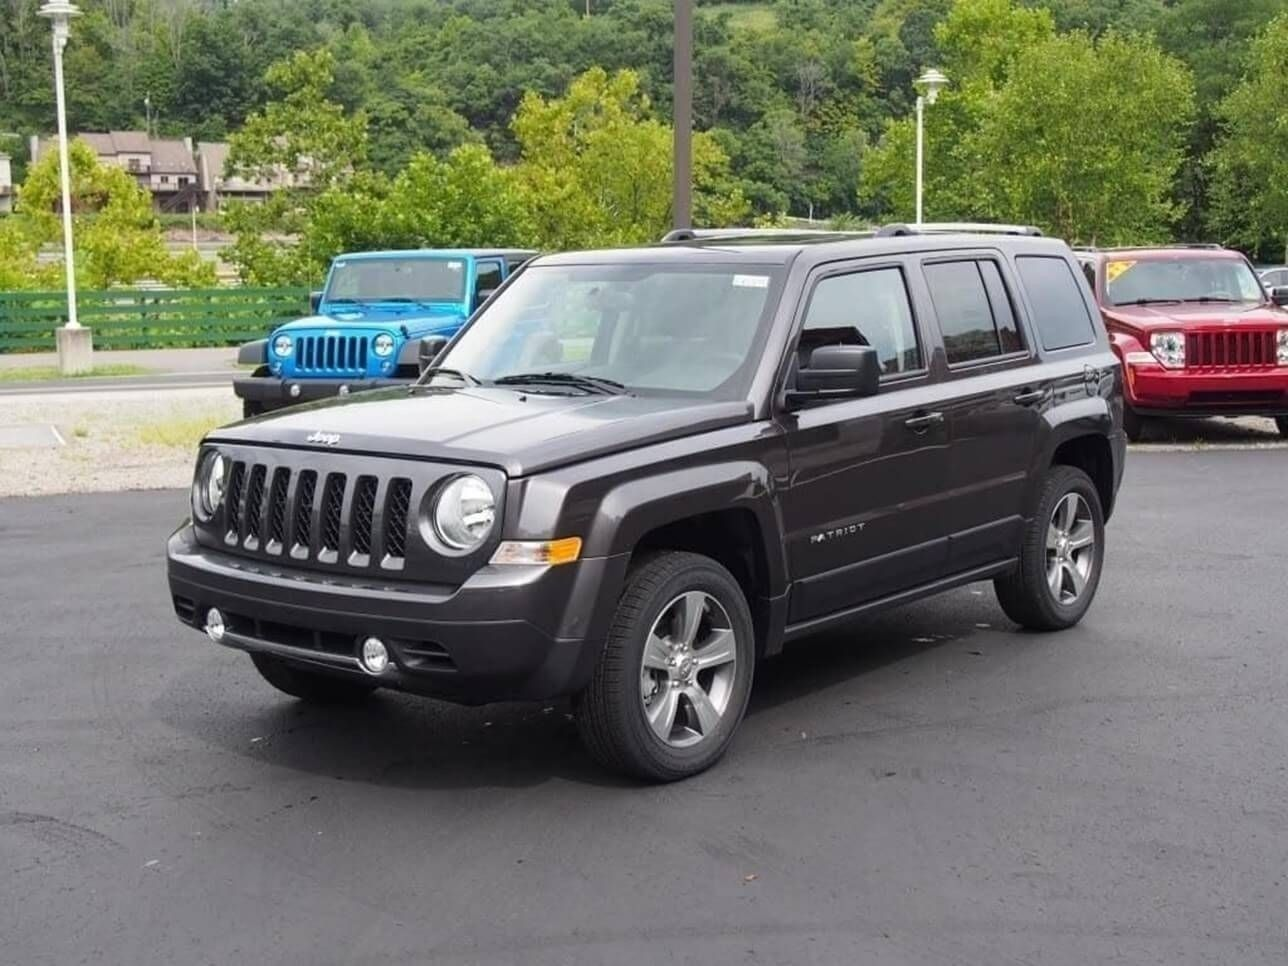 Jeep Patriot 2019 Interior Exterior And Review Jeep Patriot